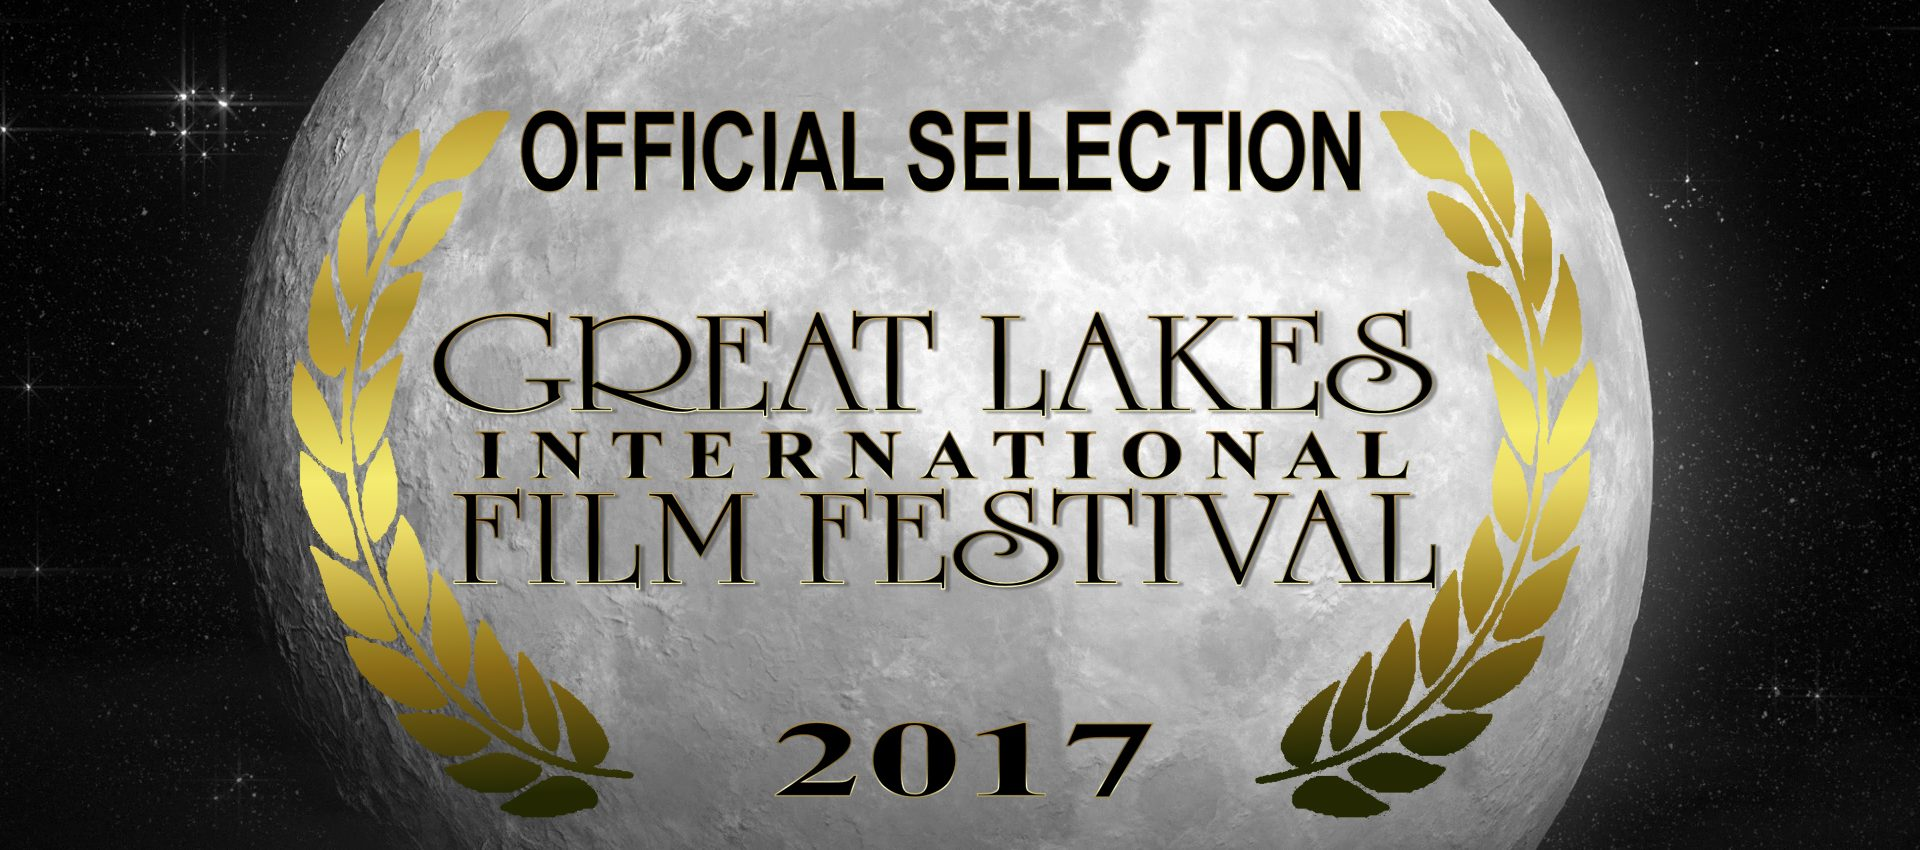 OFFICIAL SELECTION GREAT LAKES FILM FESTIVAL